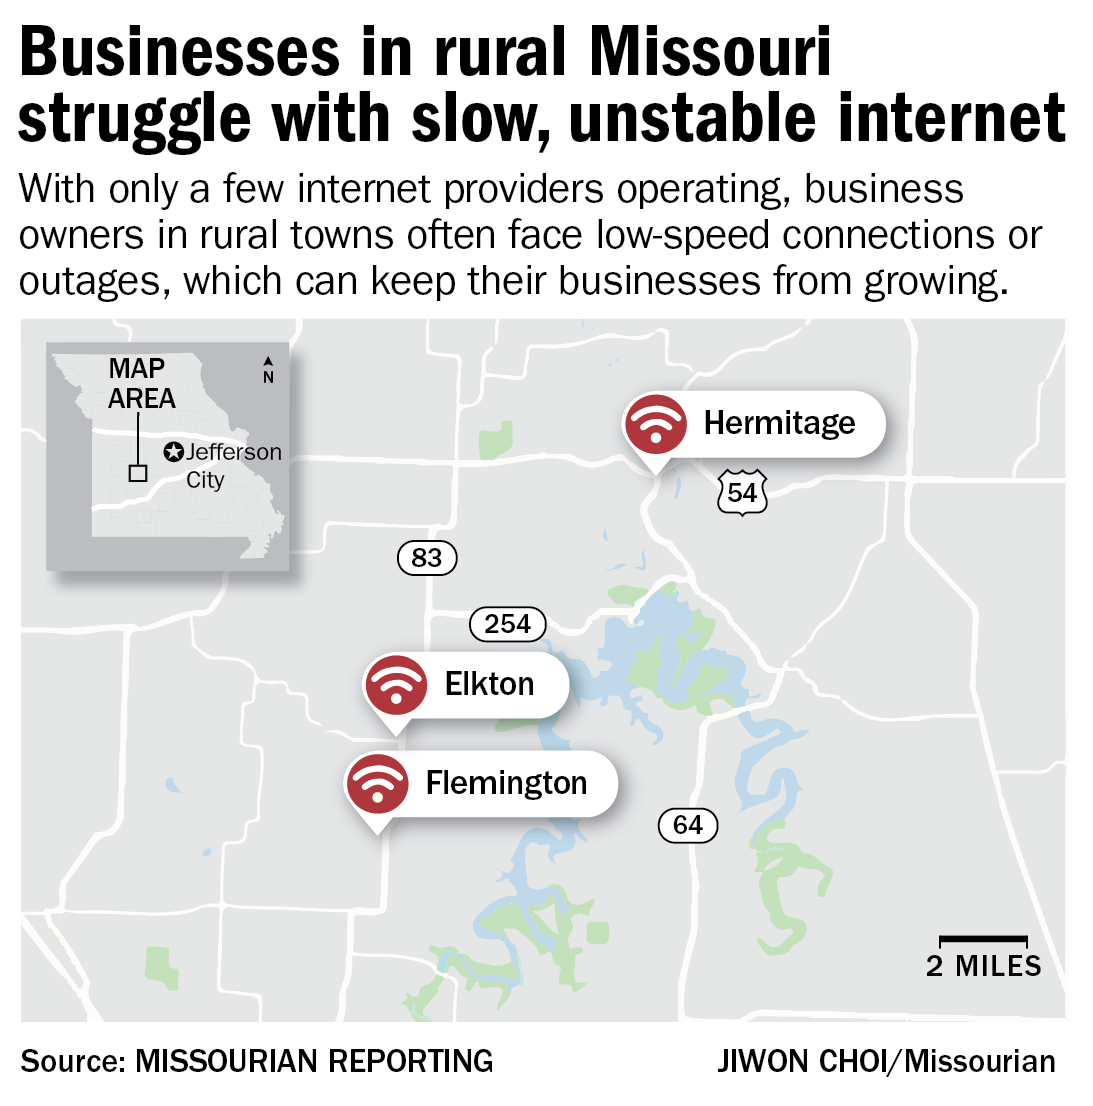 Rural businesses limited by lack of broadband | State News ... on at&t service area map, google service area map, salt river project service area map, windstream service area map, embarq corporation, wave broadband service area map, charter internet service area map, cable one service area map, bell of pennsylvania, windstream communications, alaska communications systems, frontier service area map, qwest corporation, qwest service area map, centurylink field, verizon communications, sprint service area map, fairpoint communications, charter communications service area map, new jersey bell, clearwire service area map, frontier communications, time warner telecom, los angeles county service area map, atmos energy service area map, verizon wireless service area map, u.s. cellular service area map, time warner service area map, comcast service area map, ups service area map, new york telephone, nippon telegraph and telephone, netzero service area map, invesco ltd,